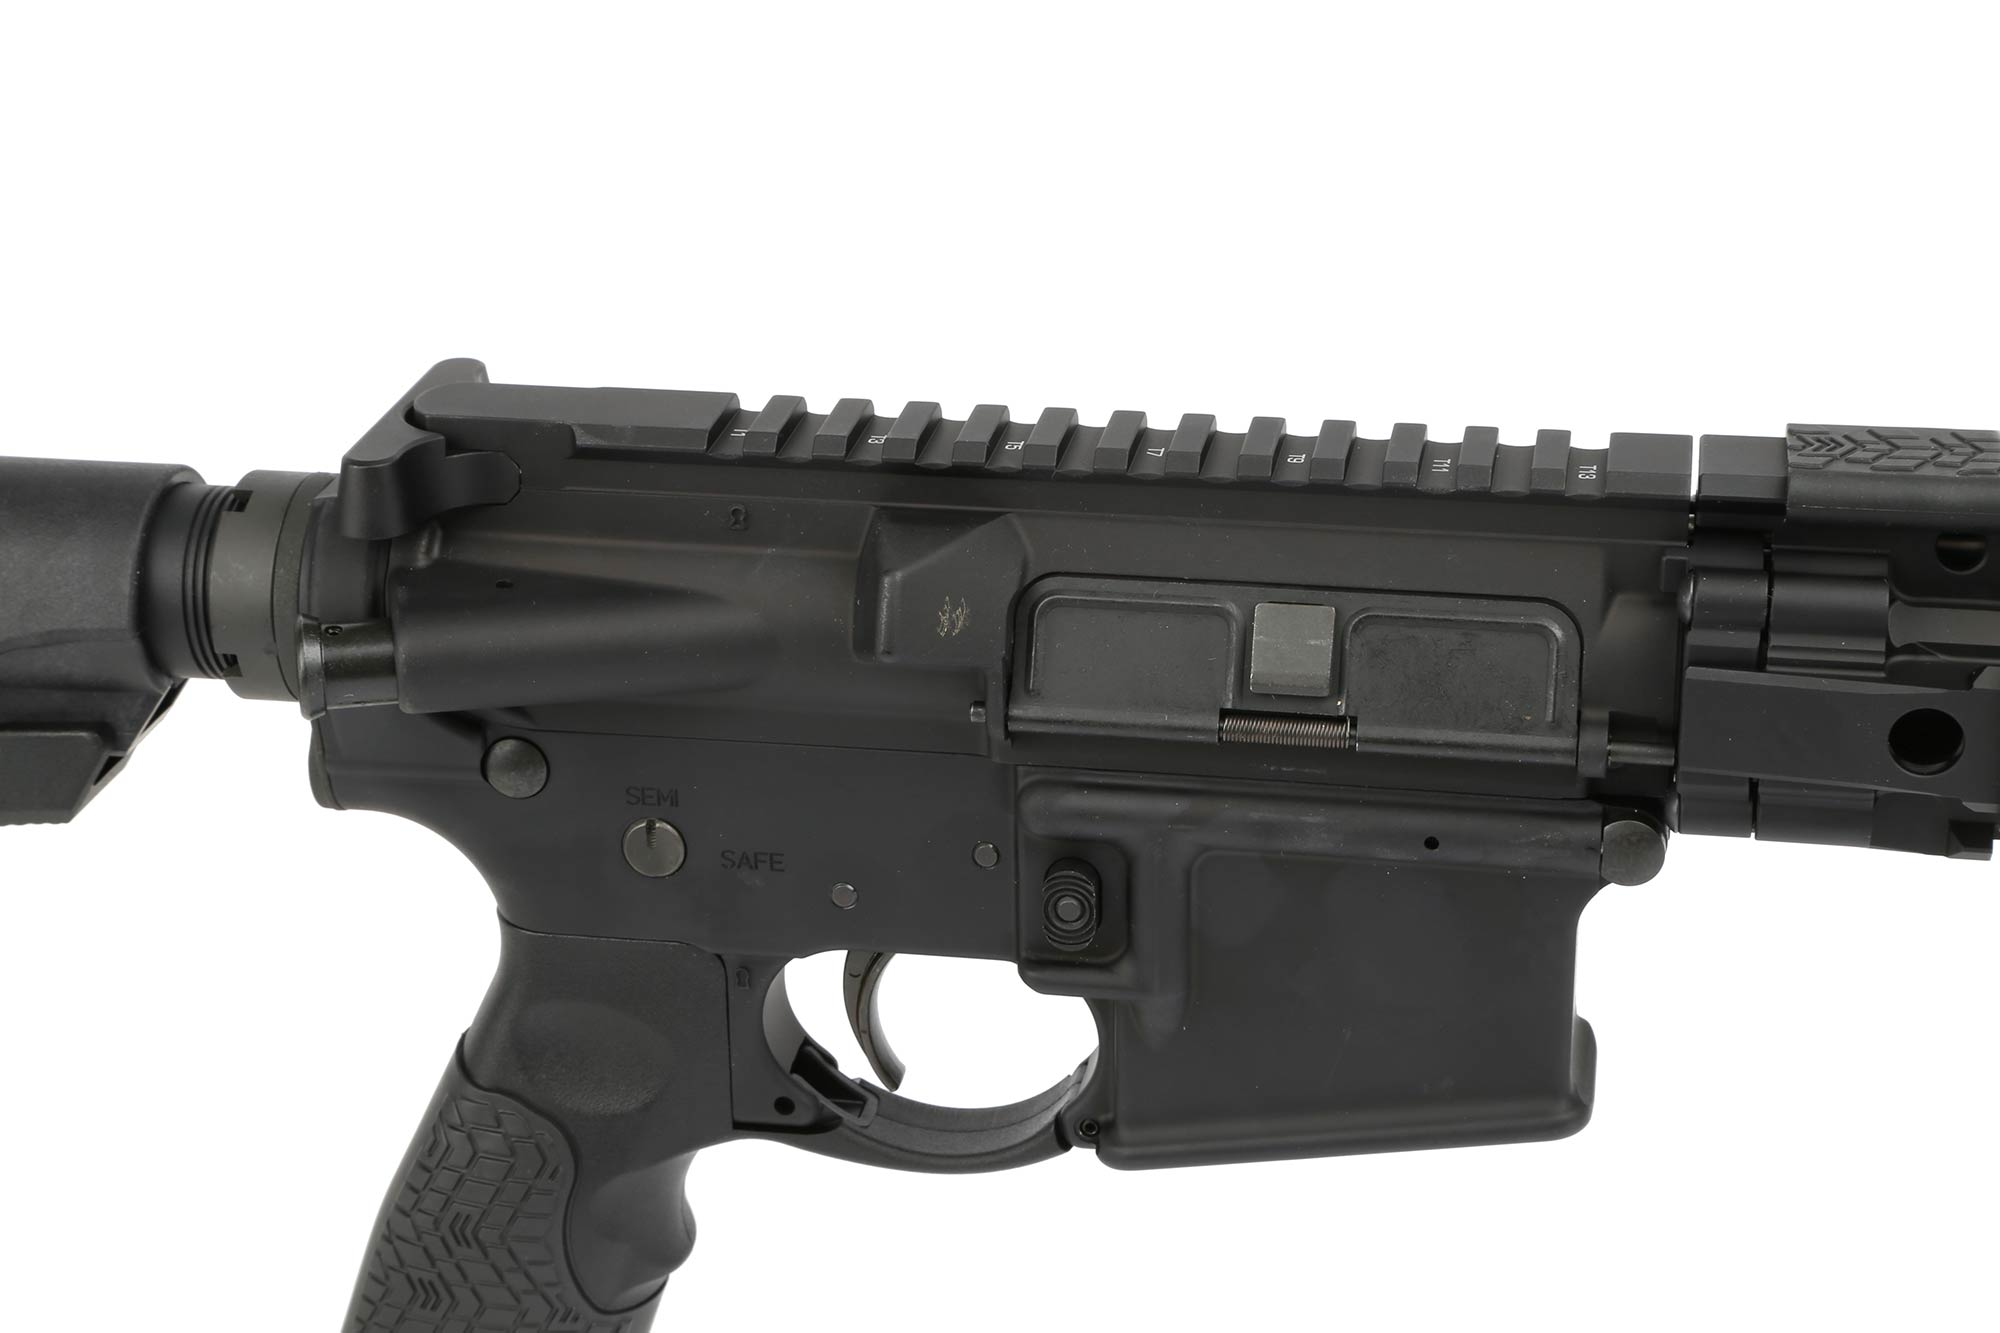 The Daniel Defense DDM4 300 S short barrel AR15 is test fired at the factory to confirm function